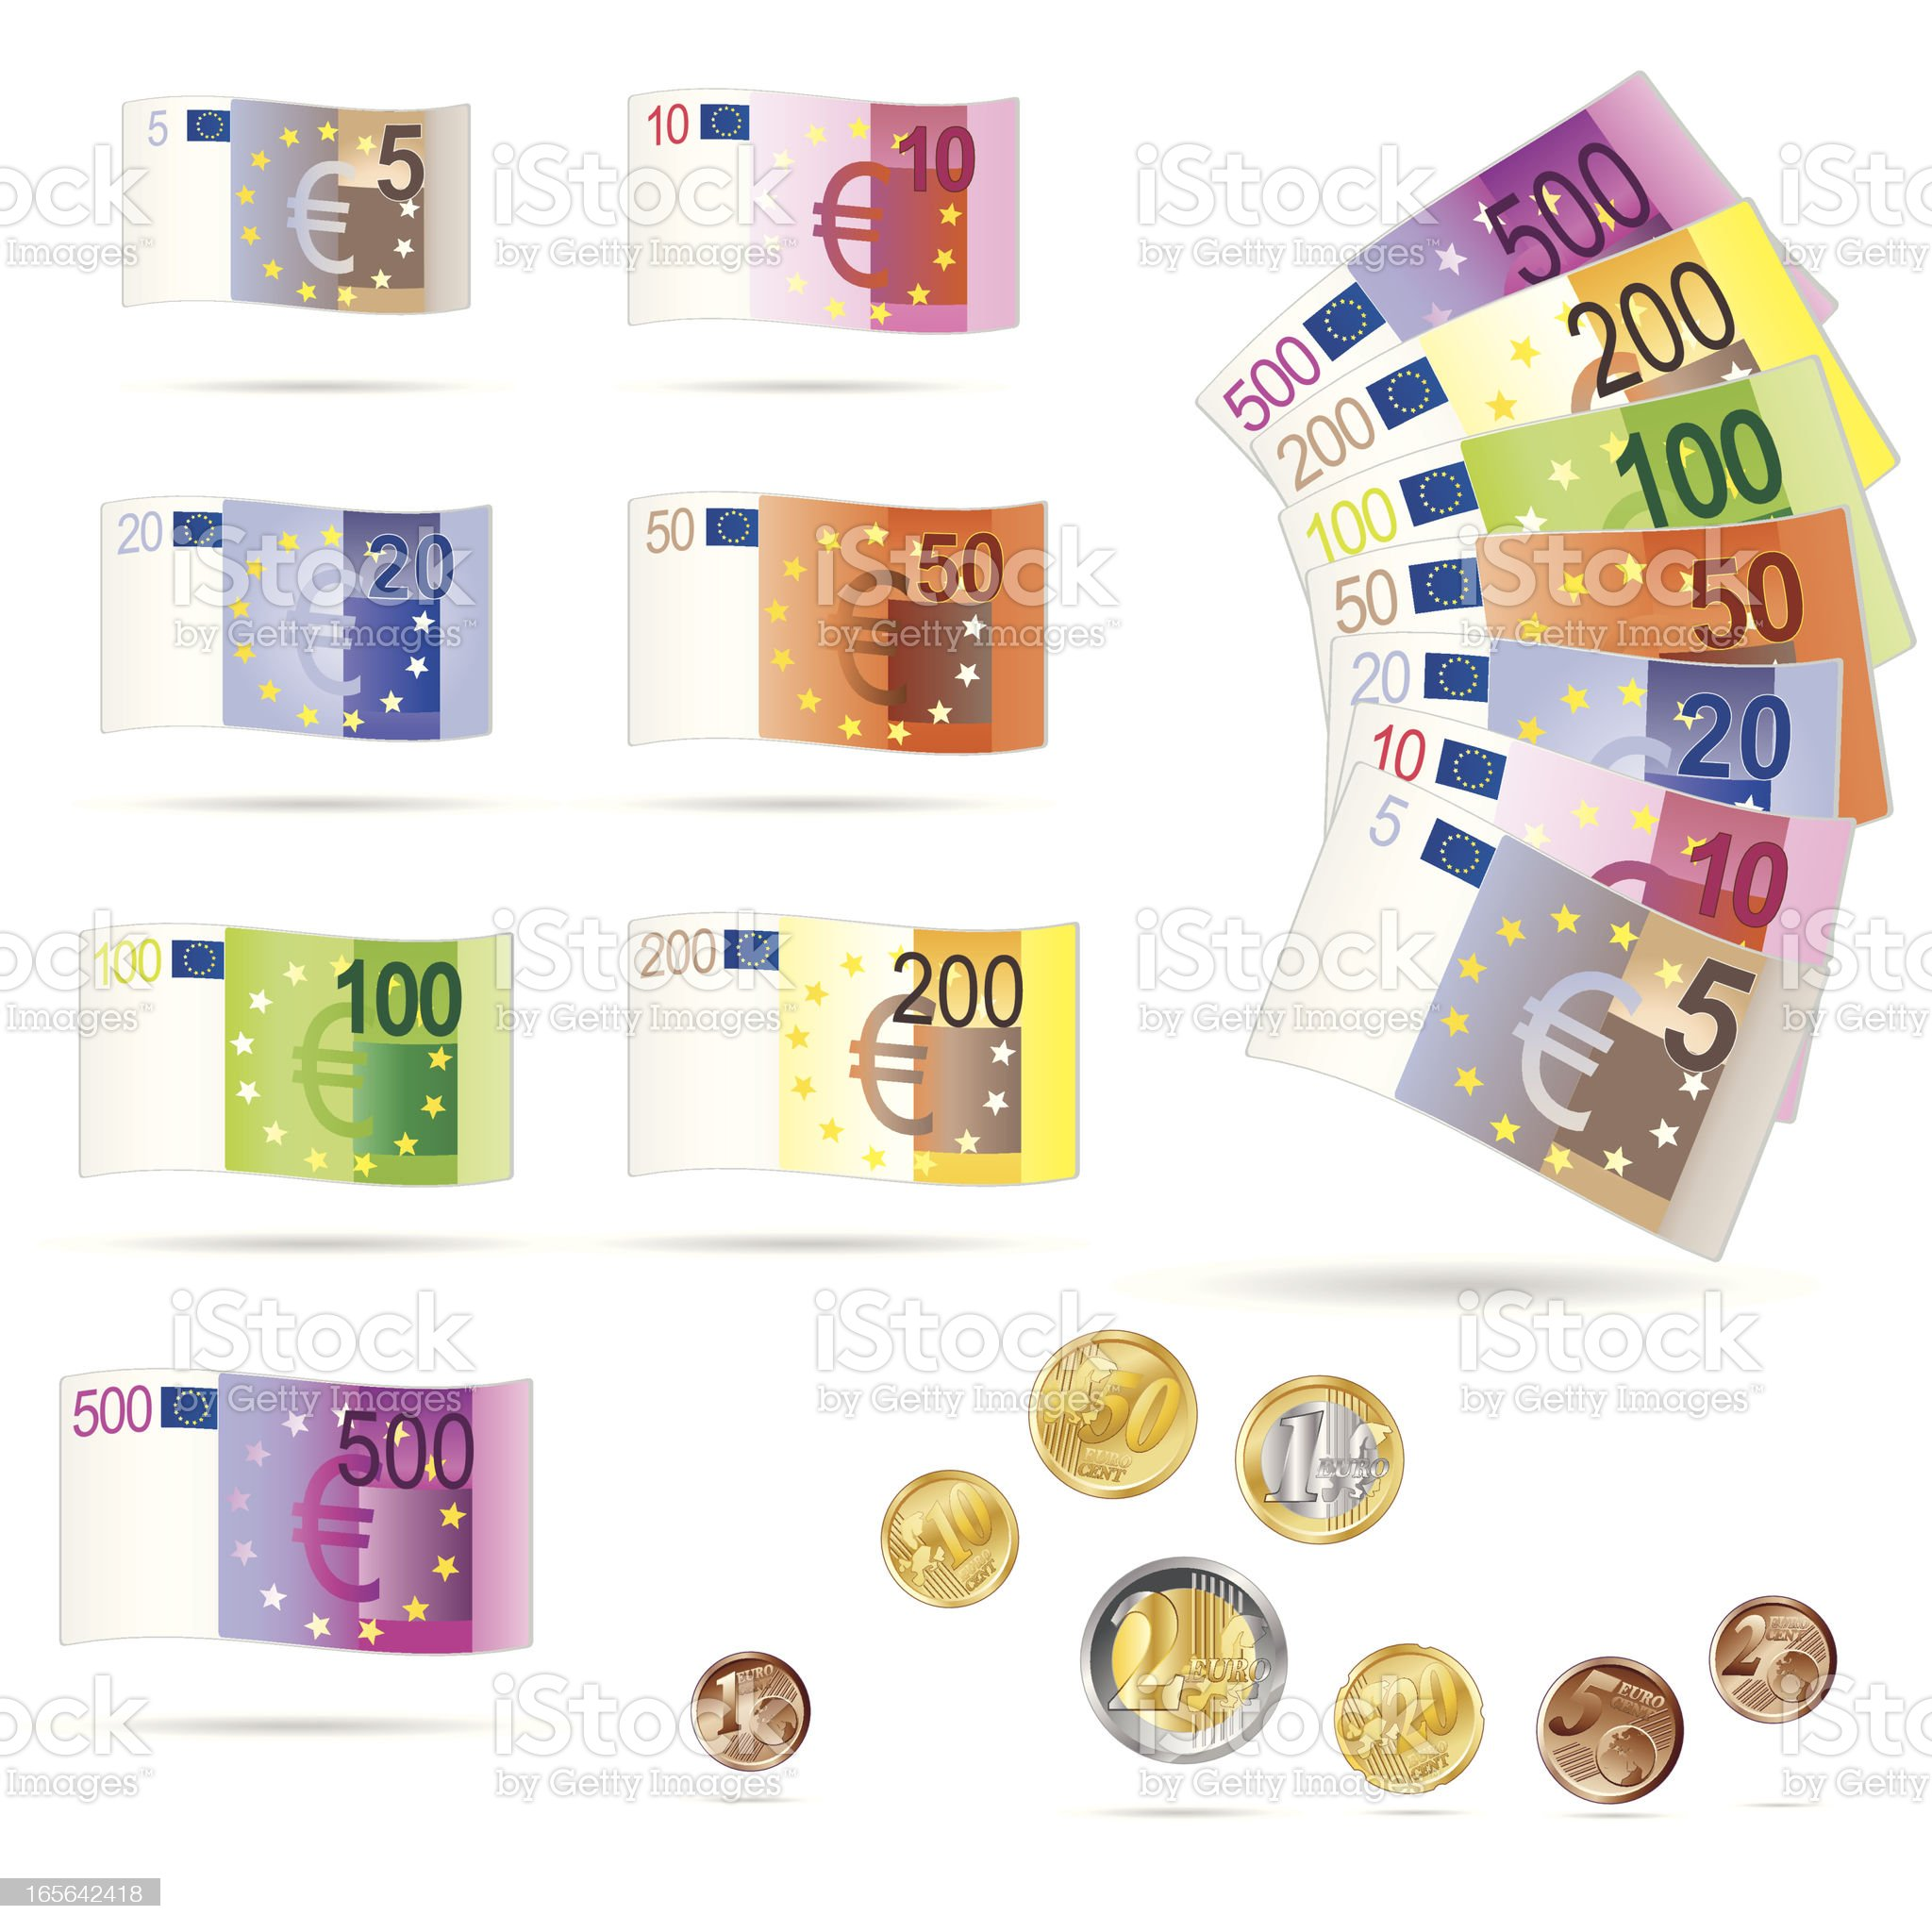 Euro bills and coins collection royalty-free stock vector art